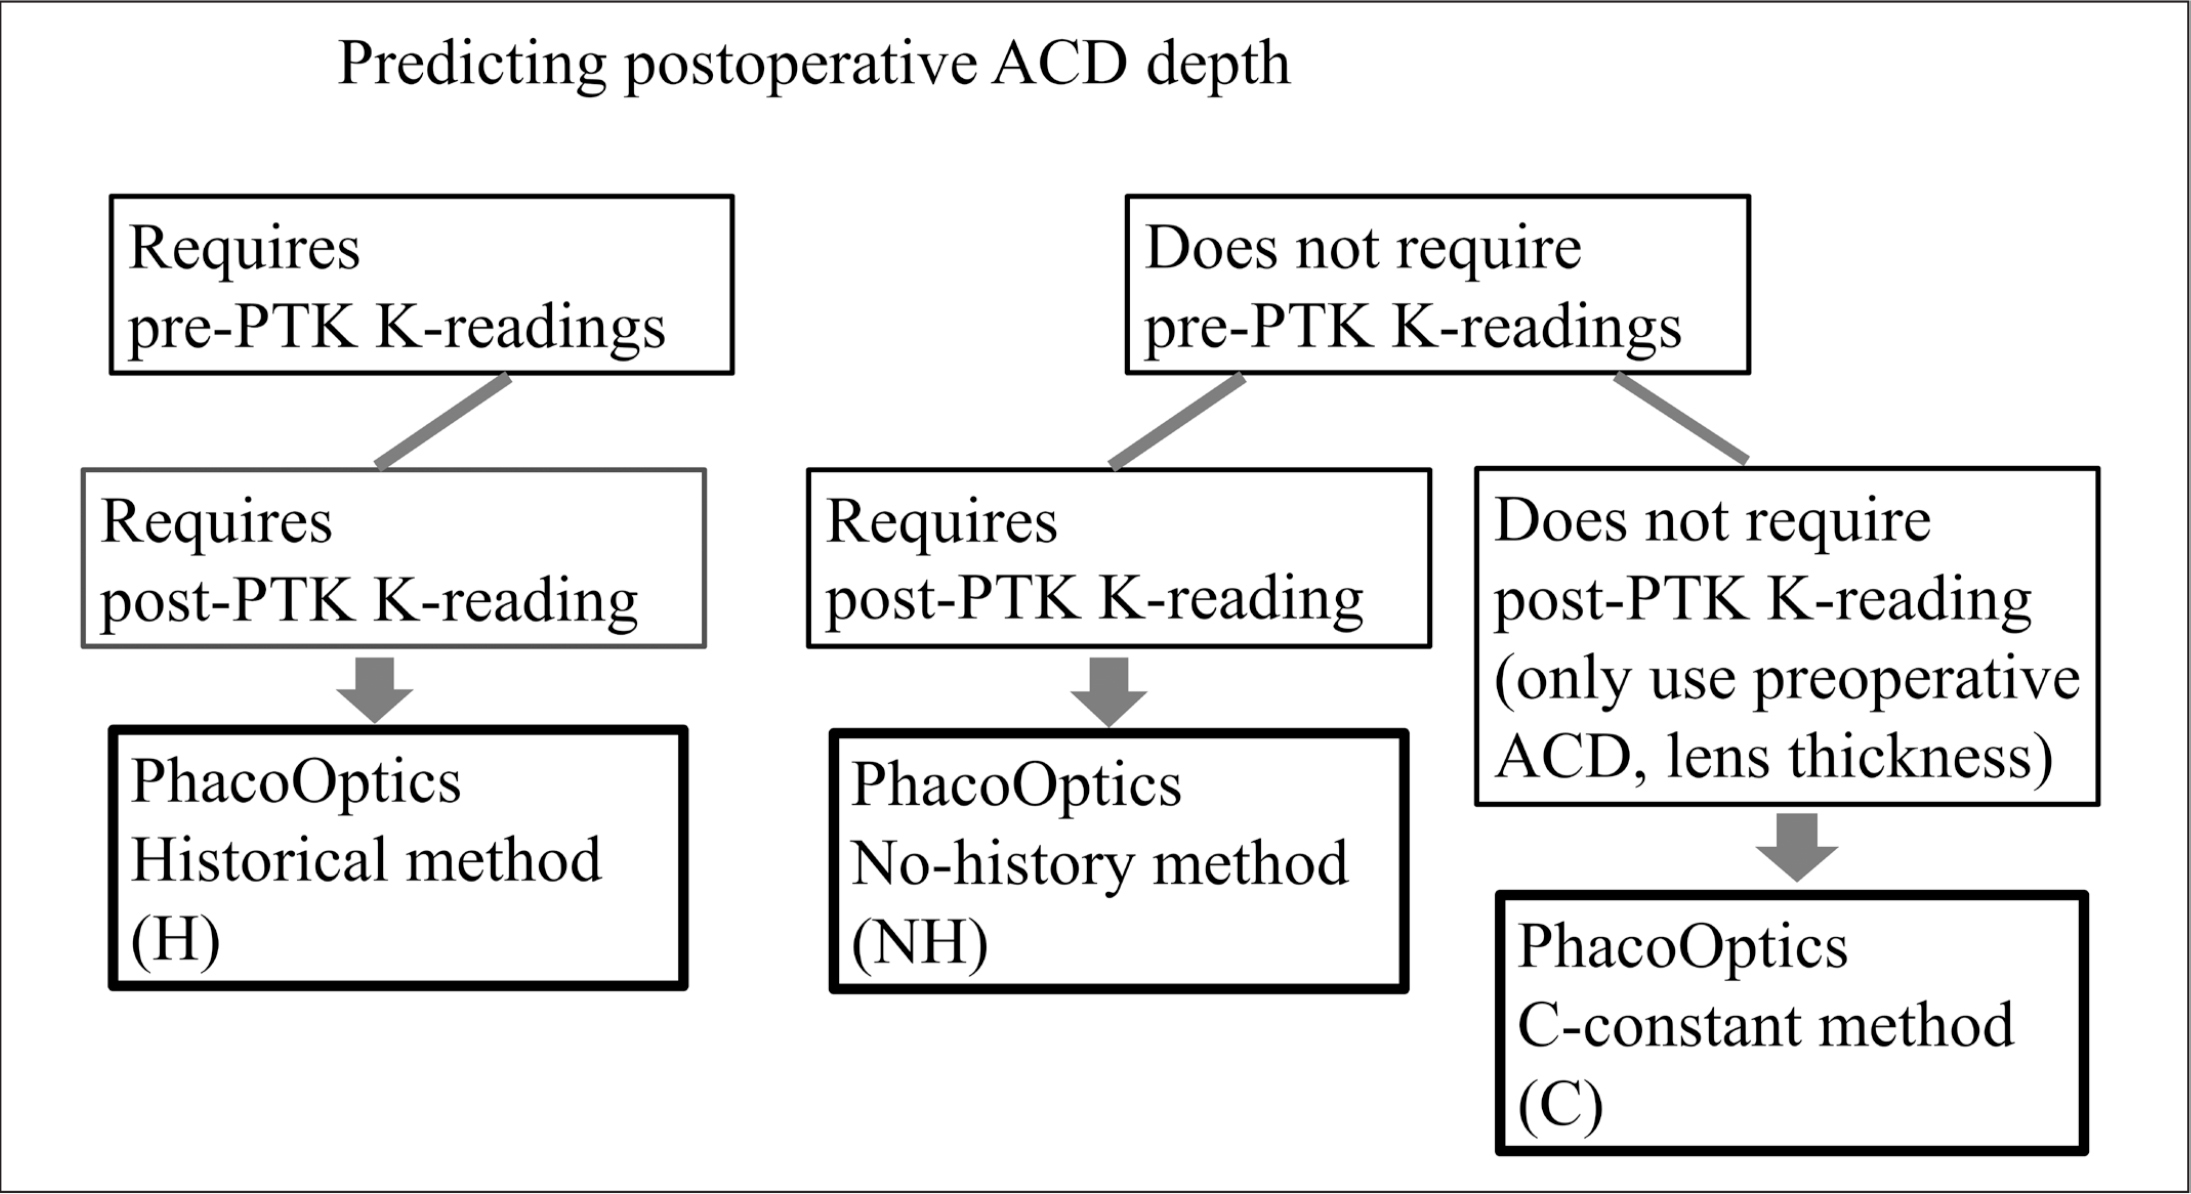 The flow diagram shows the three methods of calculation of the PhacoOptics formula (IOL Innovations ApS, Aarhus, Denmark), which are differentiated according to the manner by which the postoperative anterior chamber depth (ACD) is predicted. PTK = phototherapeutic keratectomy